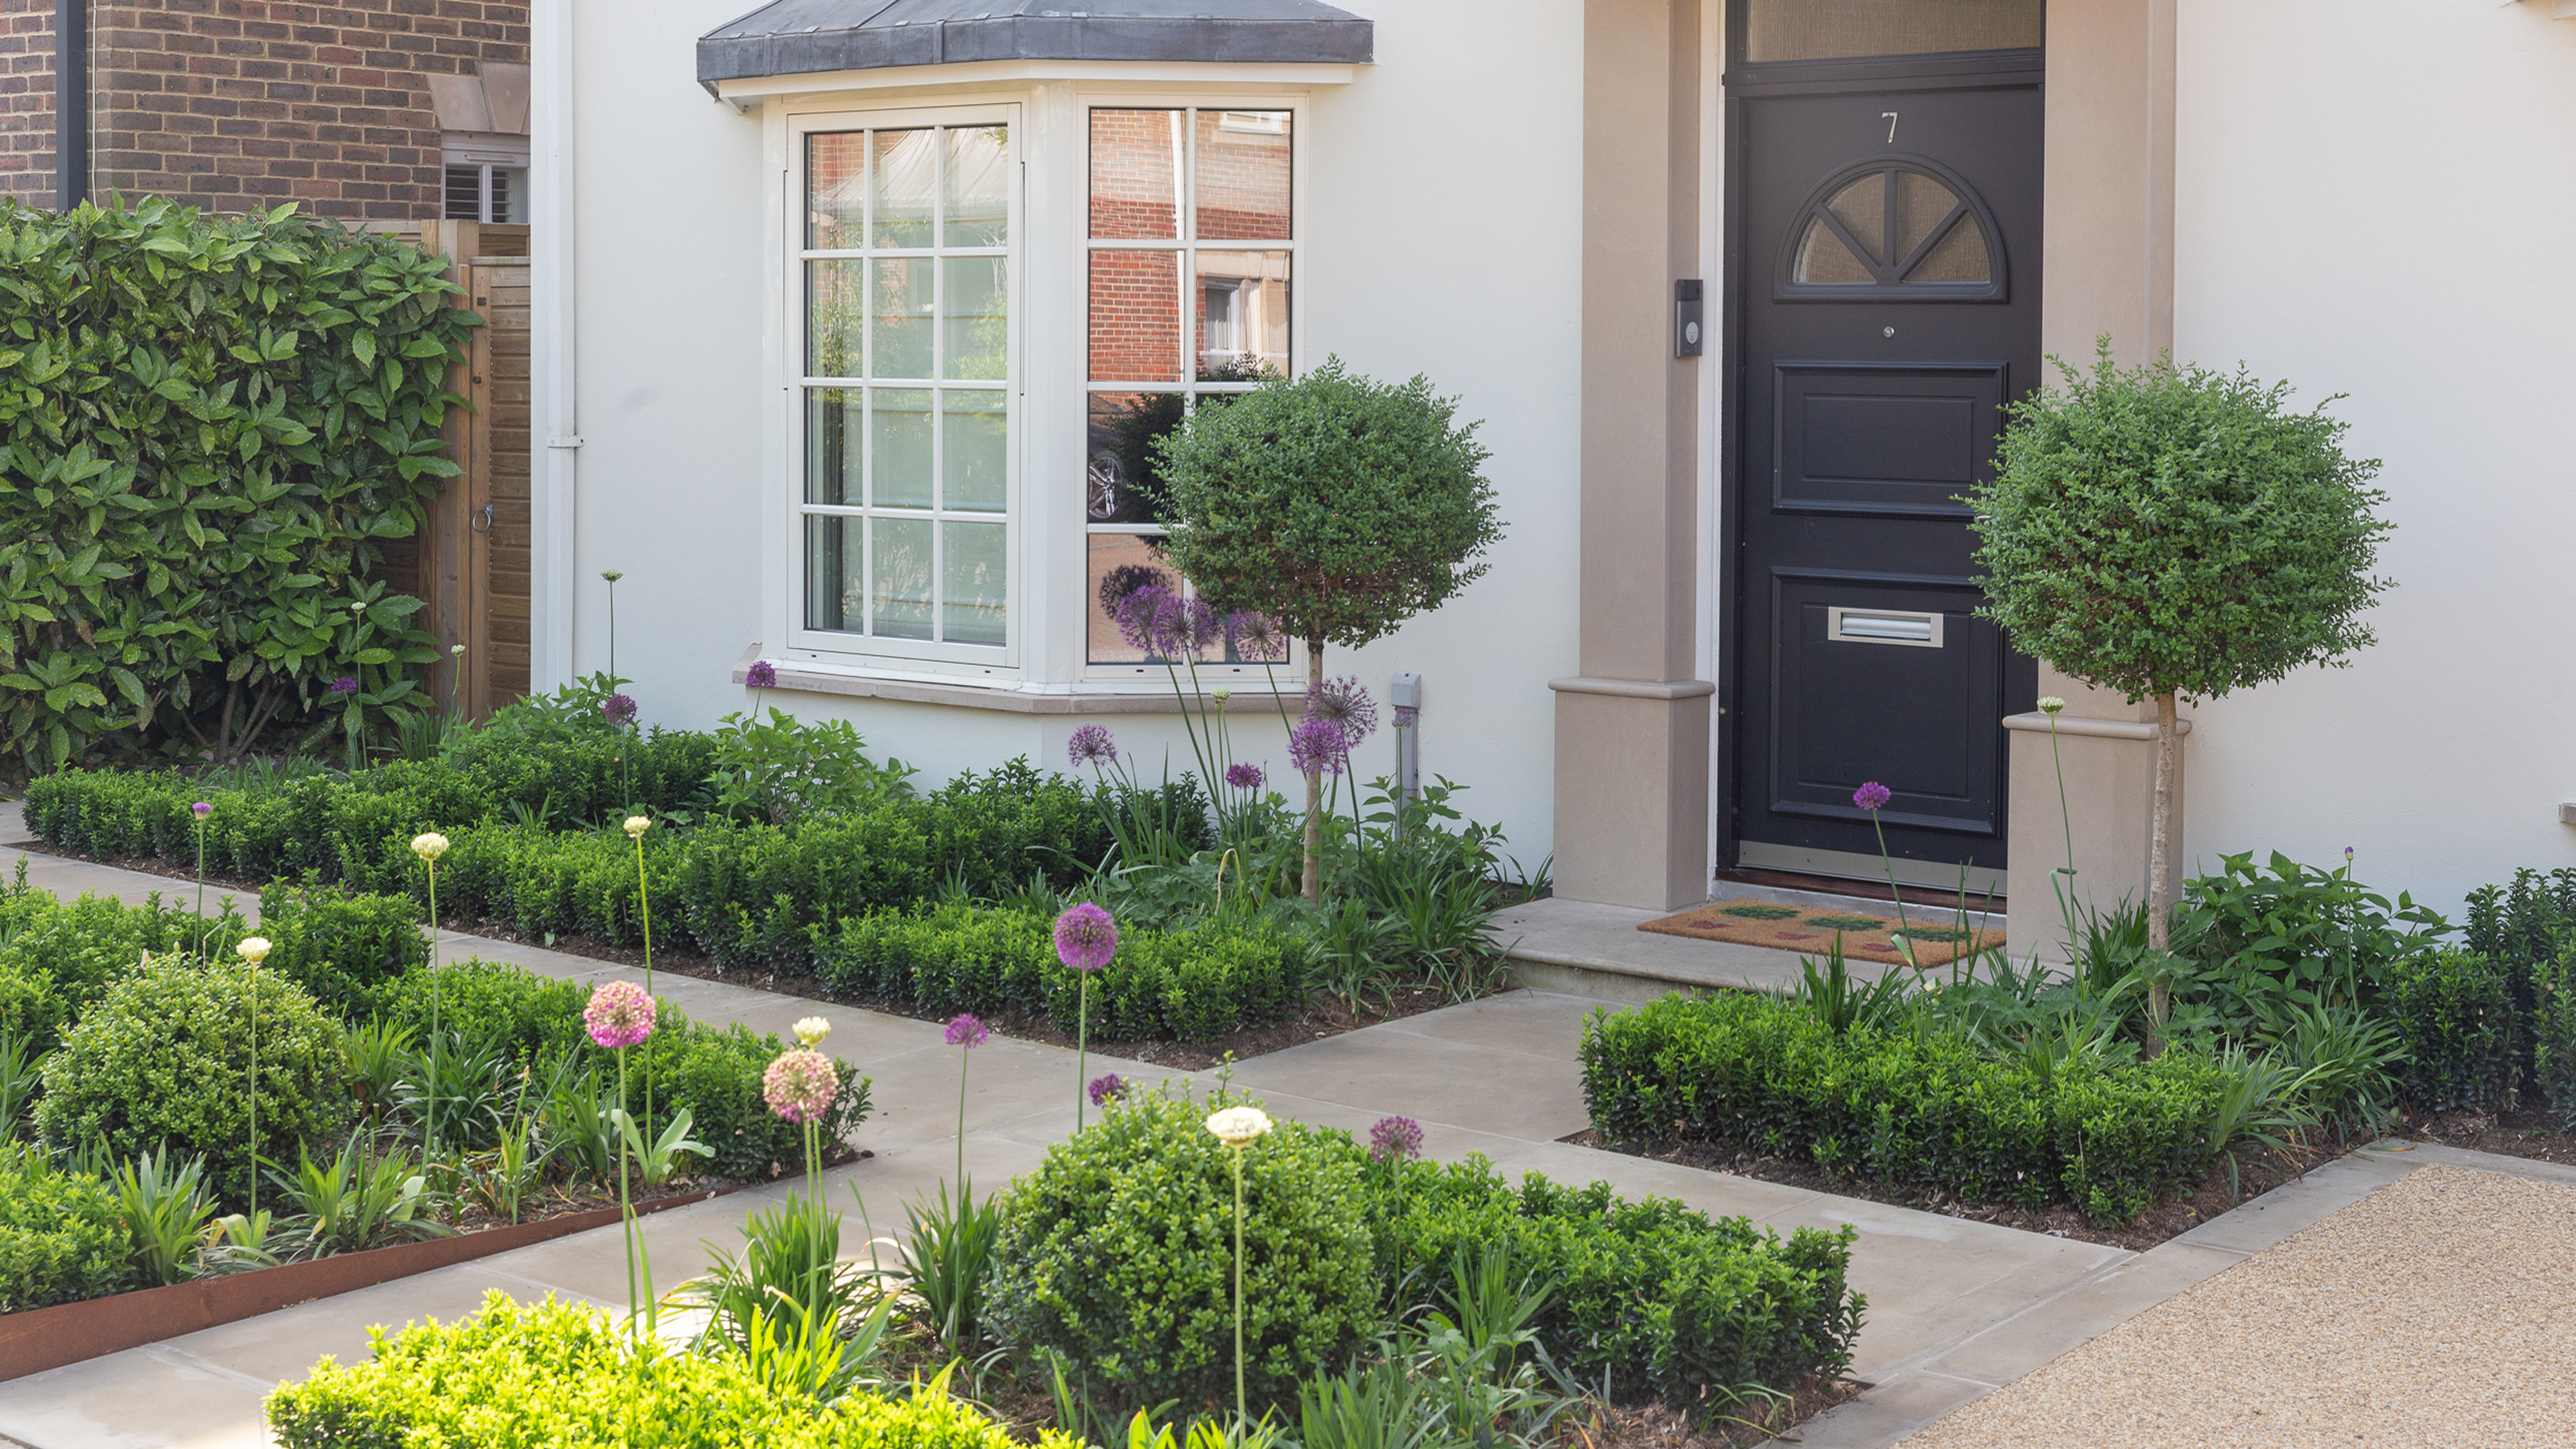 Landscaping ideas for front of house 20 ways to spruce up your ...